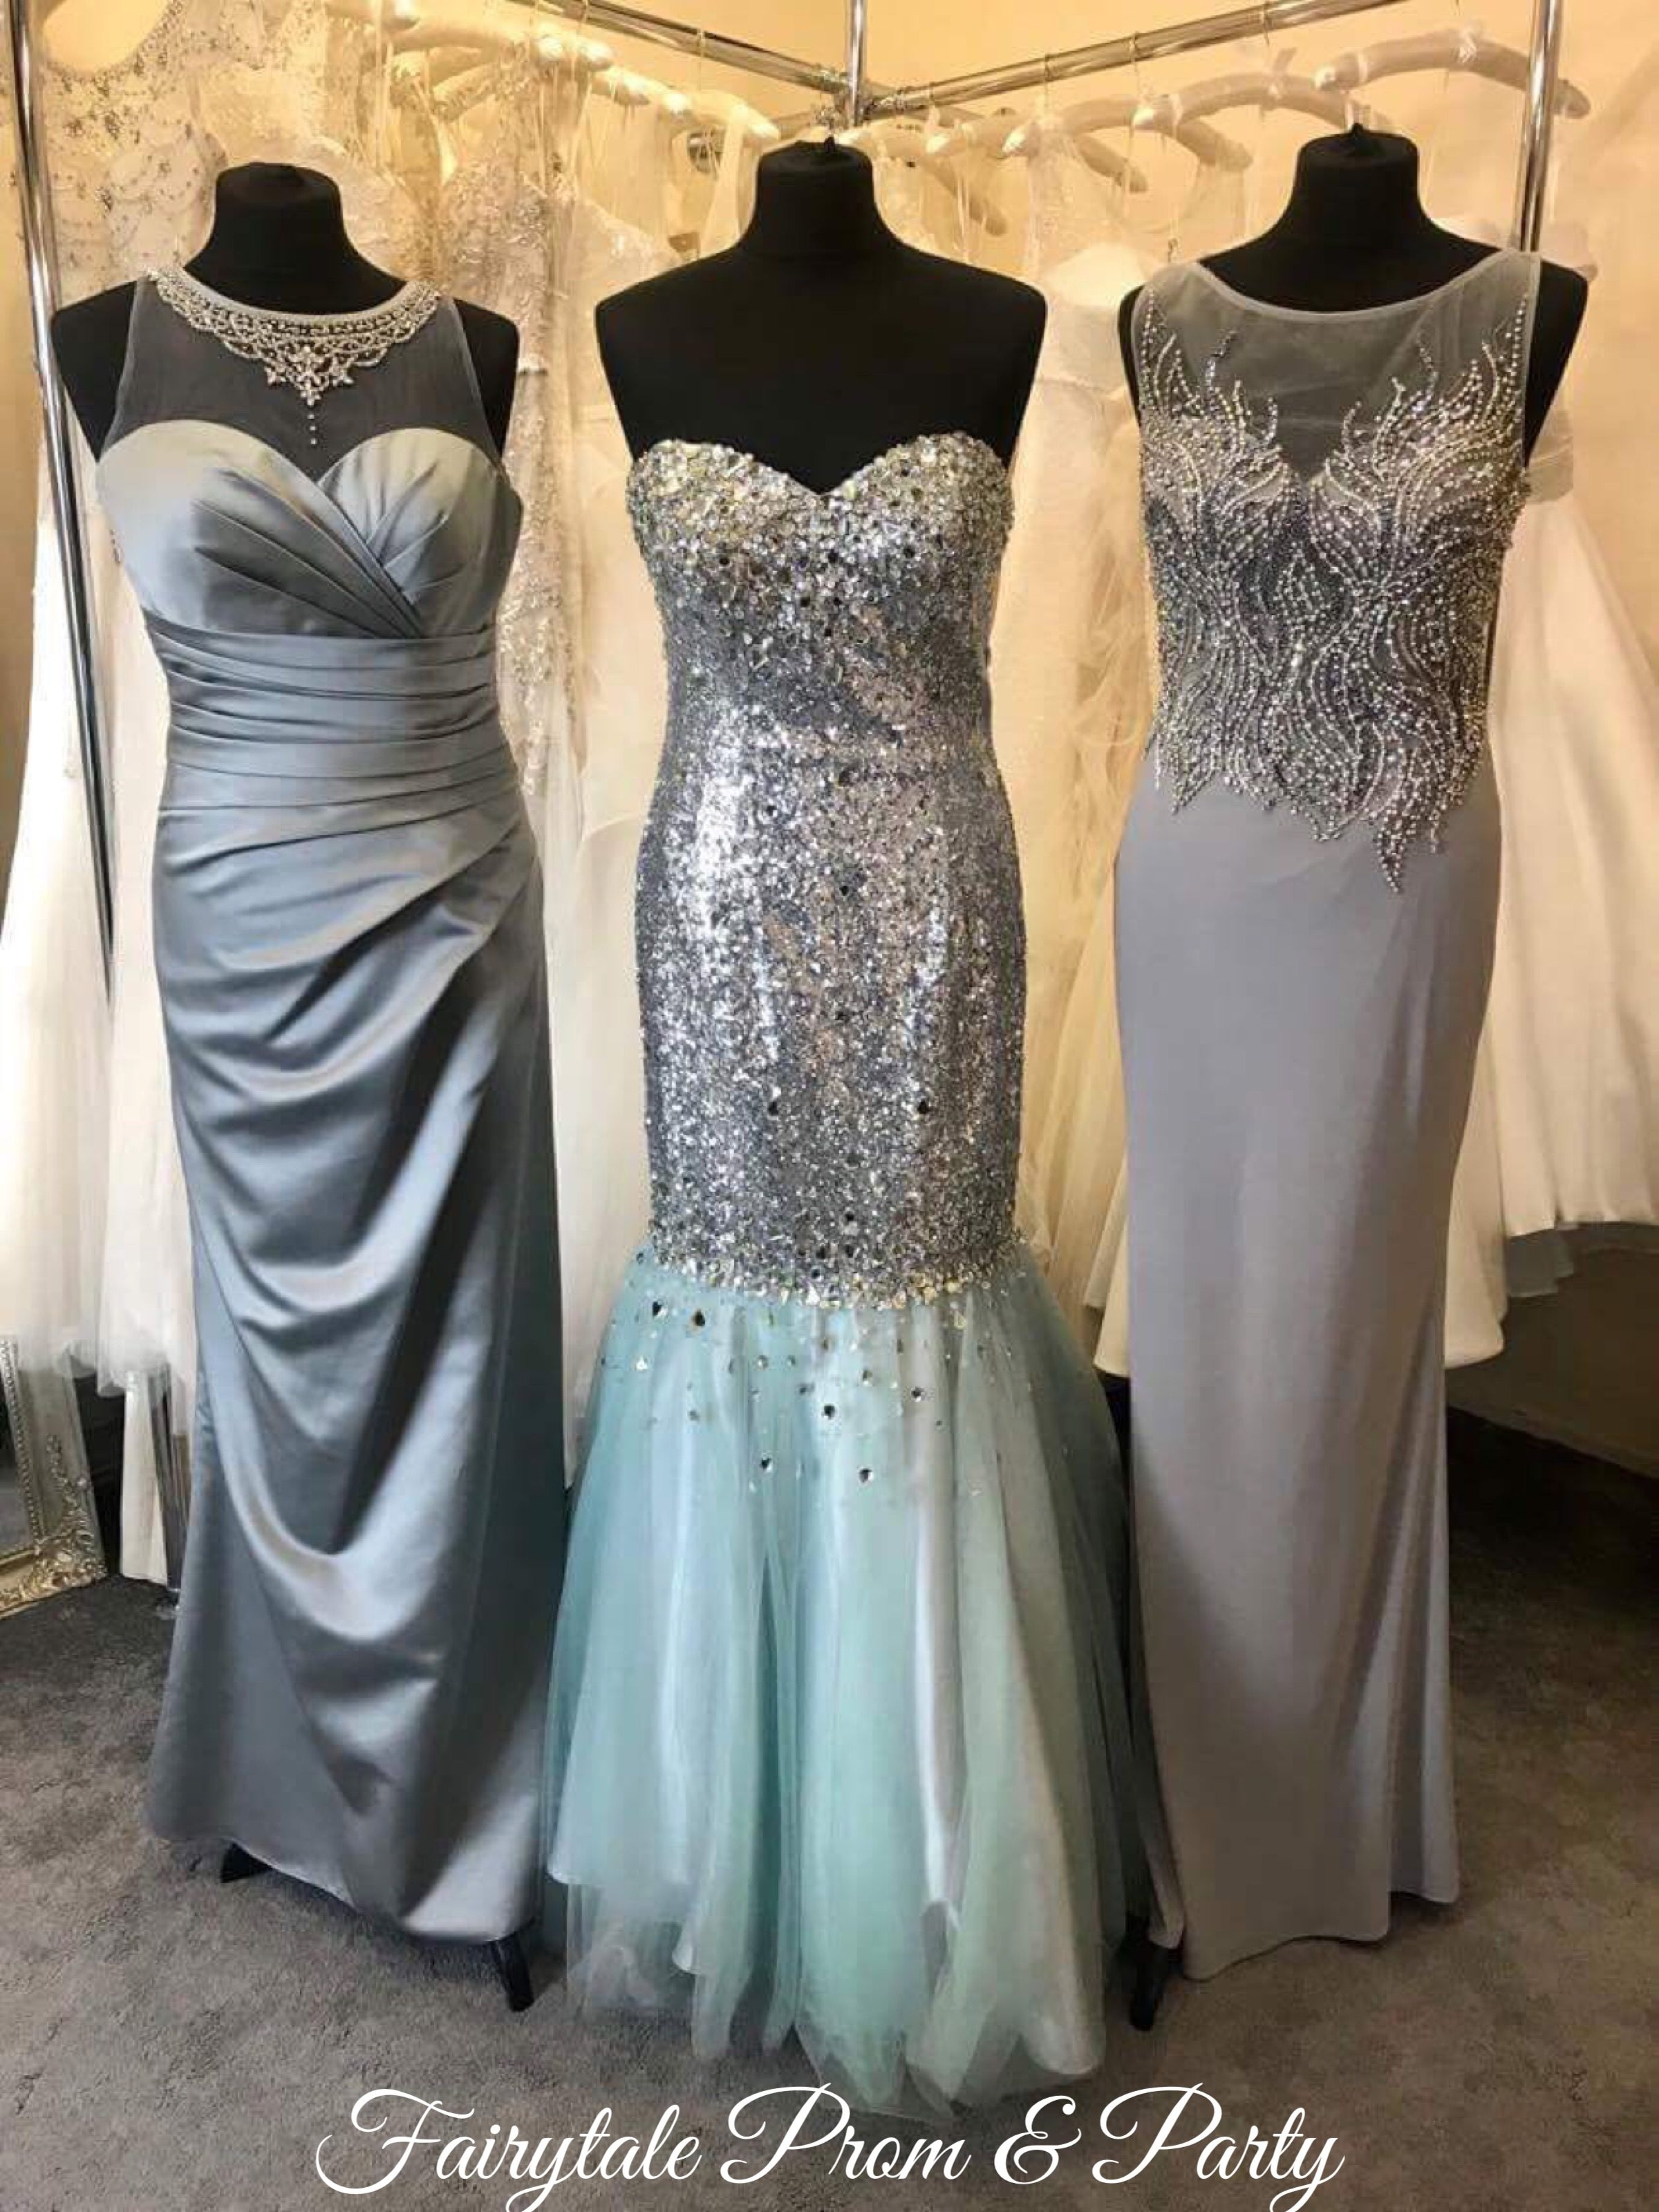 Pin by fairytale bride on fairytale prom u party pinterest prom